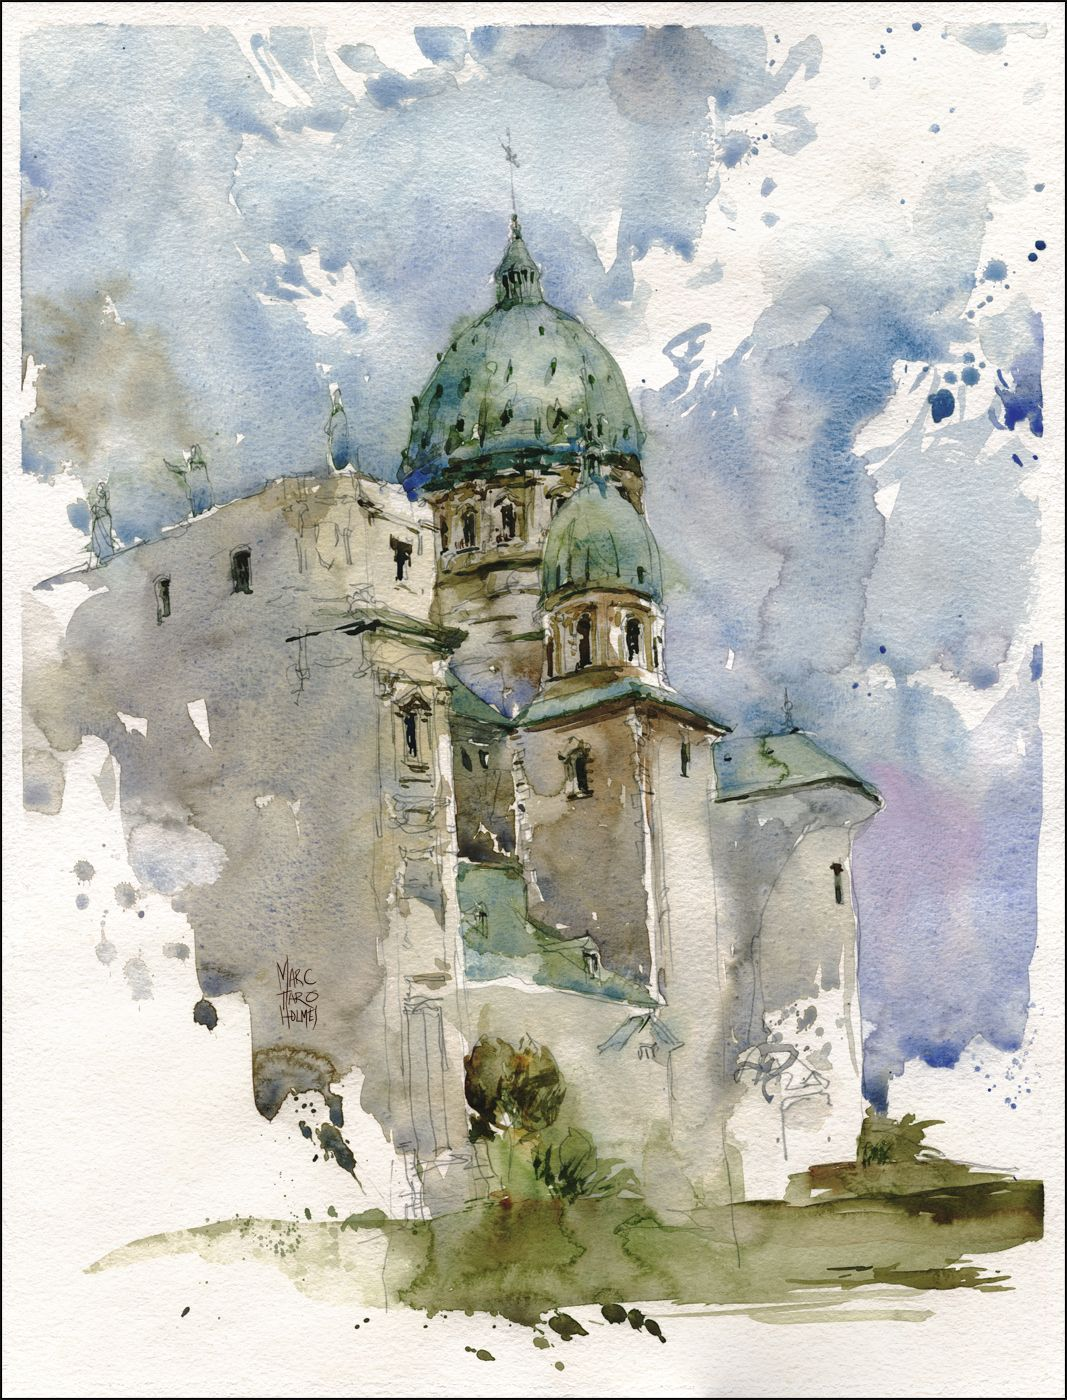 And the demos from the weekend aquarell aquarell for Architektur aquarell